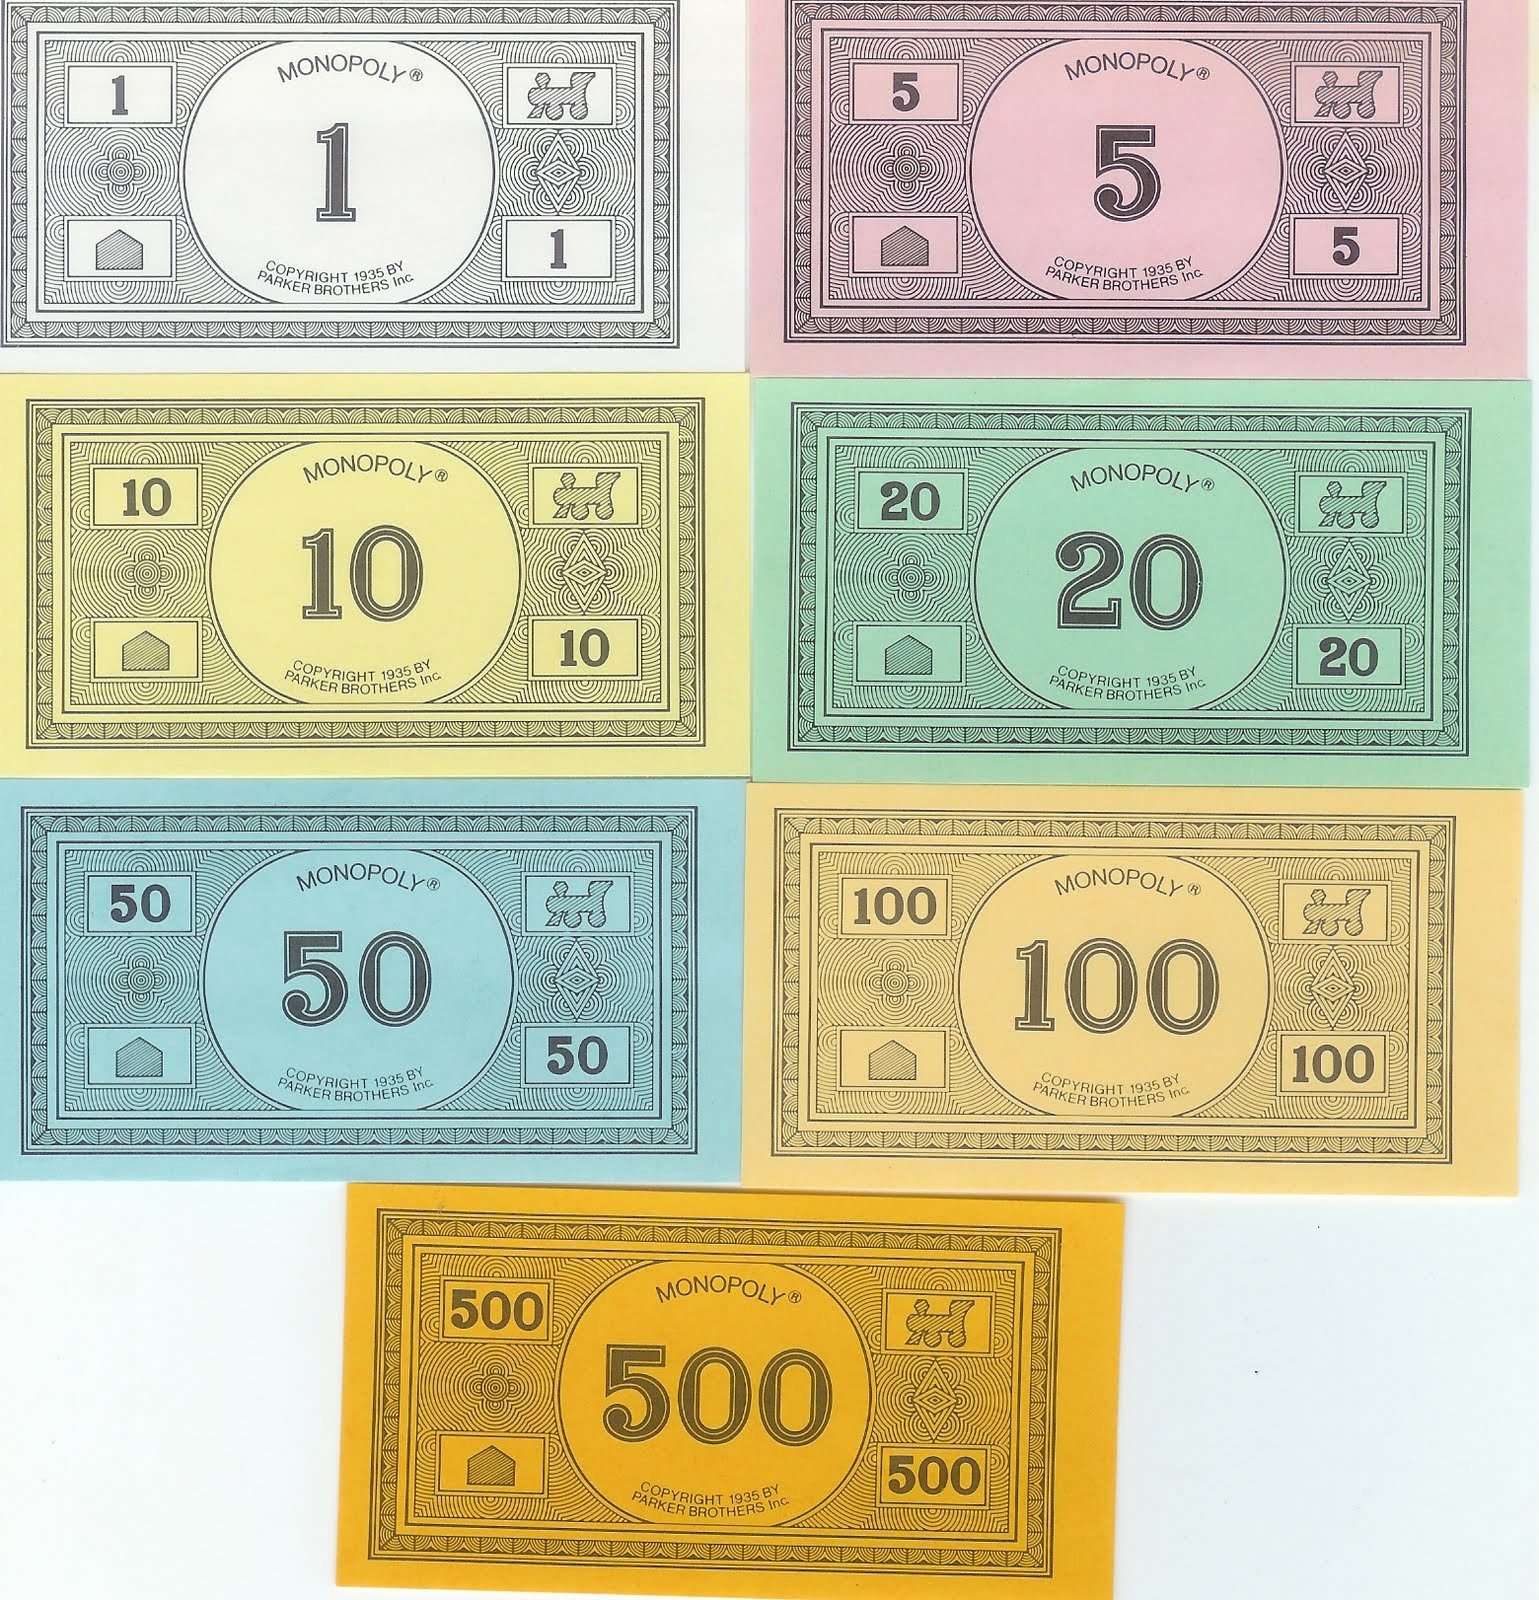 Editable Play Money Template Inspirational Monopoly Money Template Beepmunk